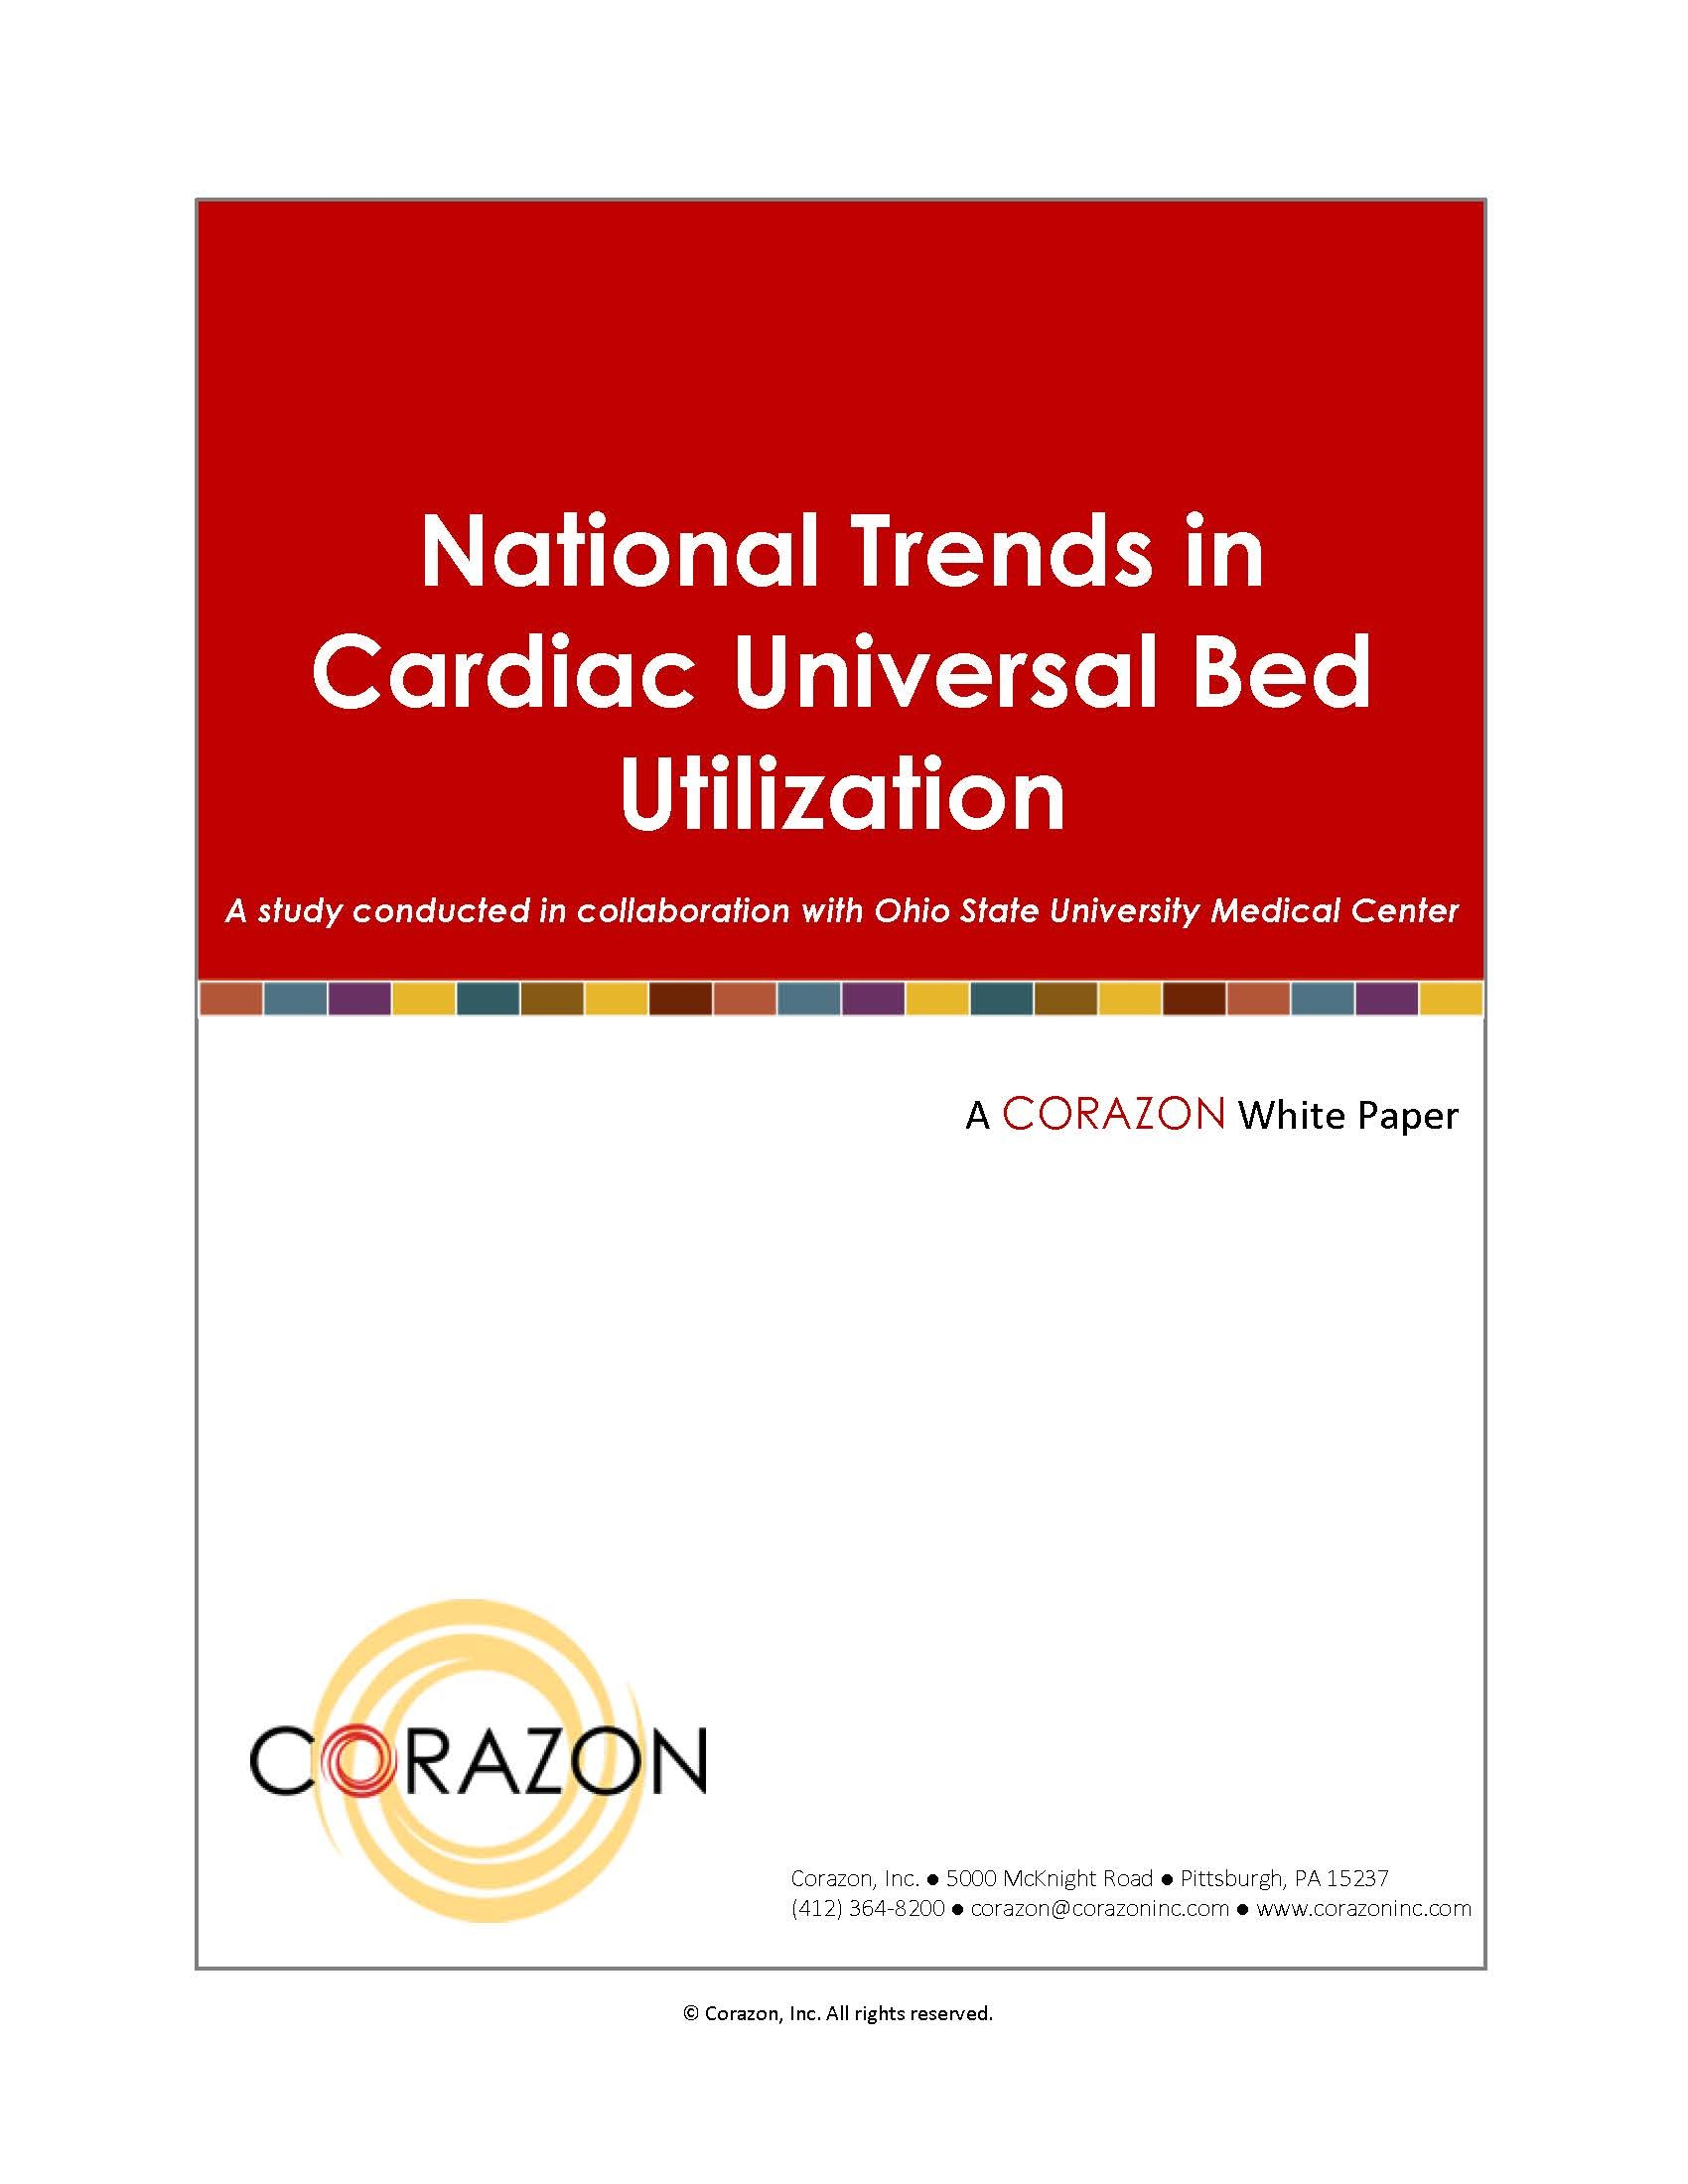 National Trends in Cardiac Universal Bed Utilization 00012